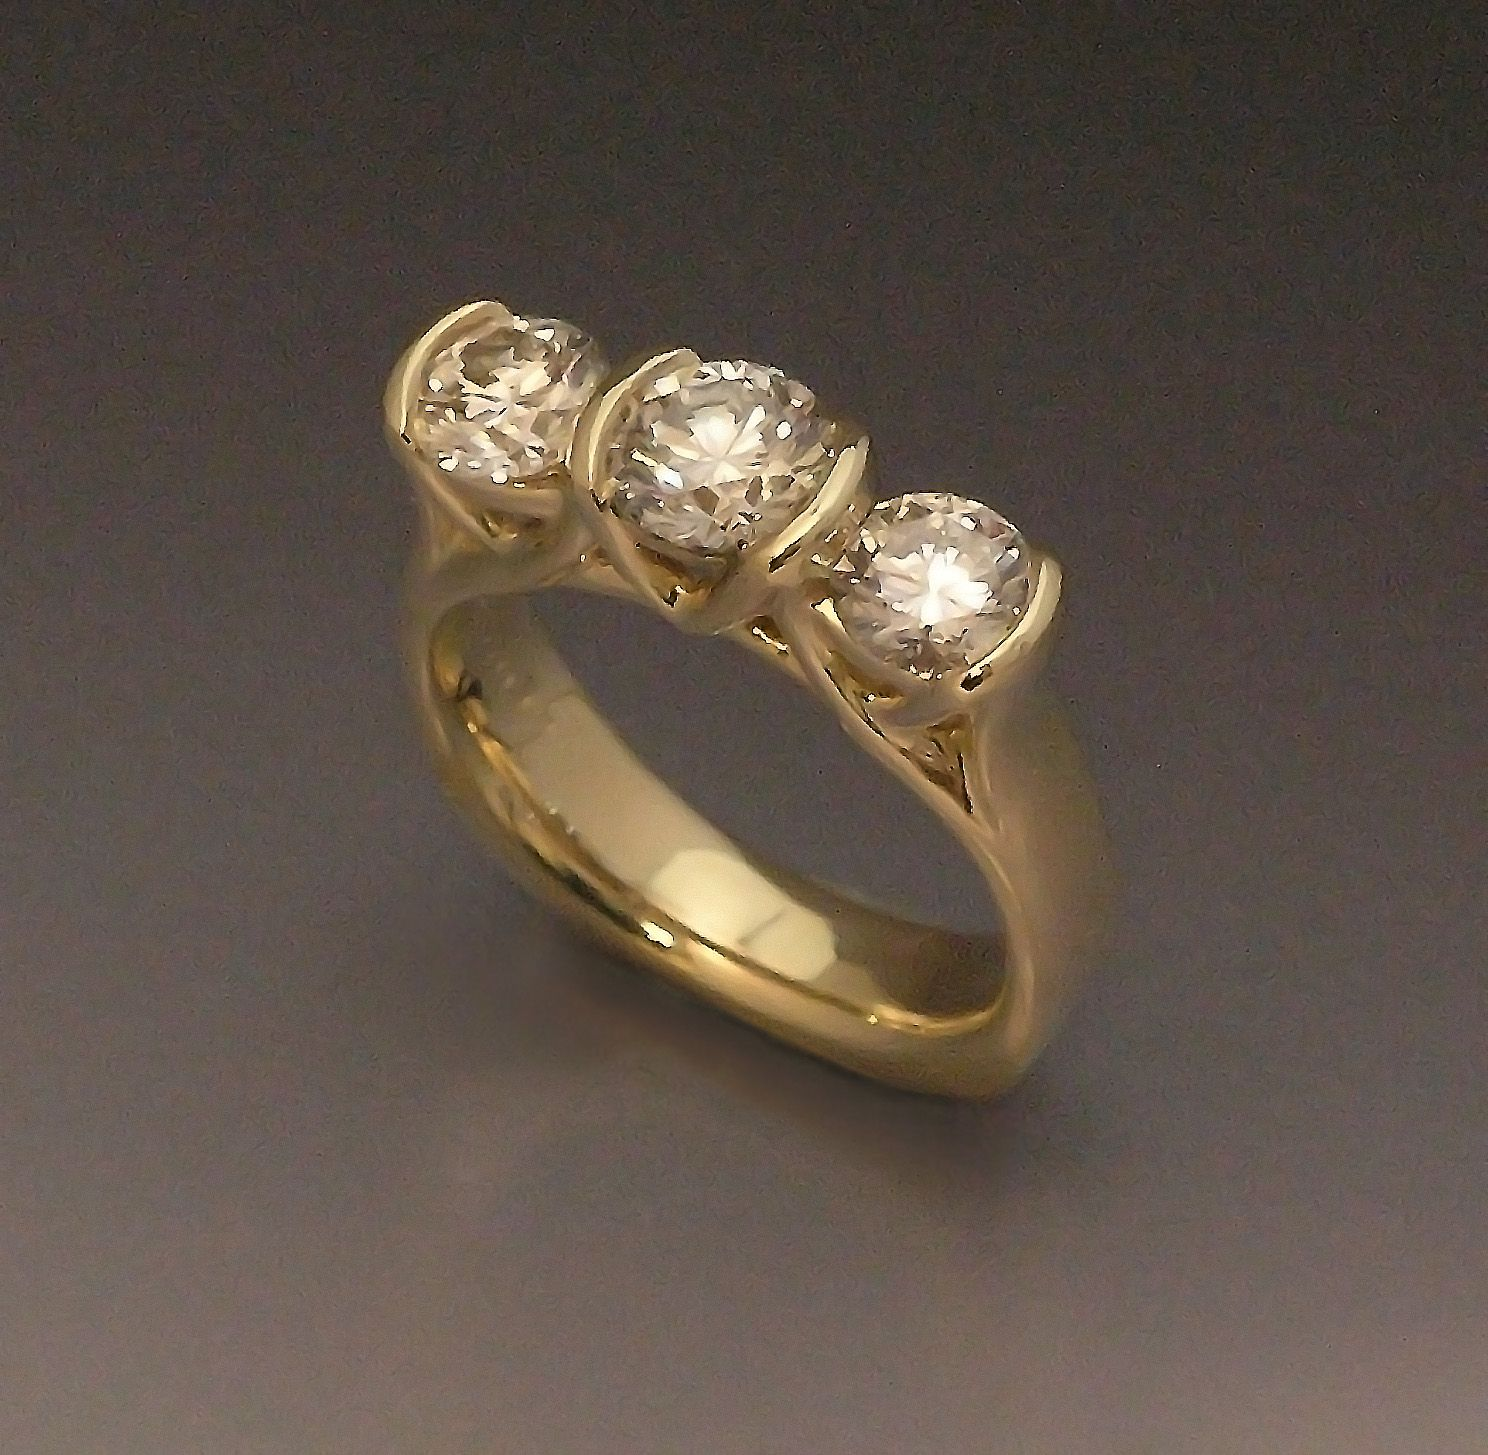 Restyled Triple Diamond Ring in 14k Yellow Gold, by Mary Wong.